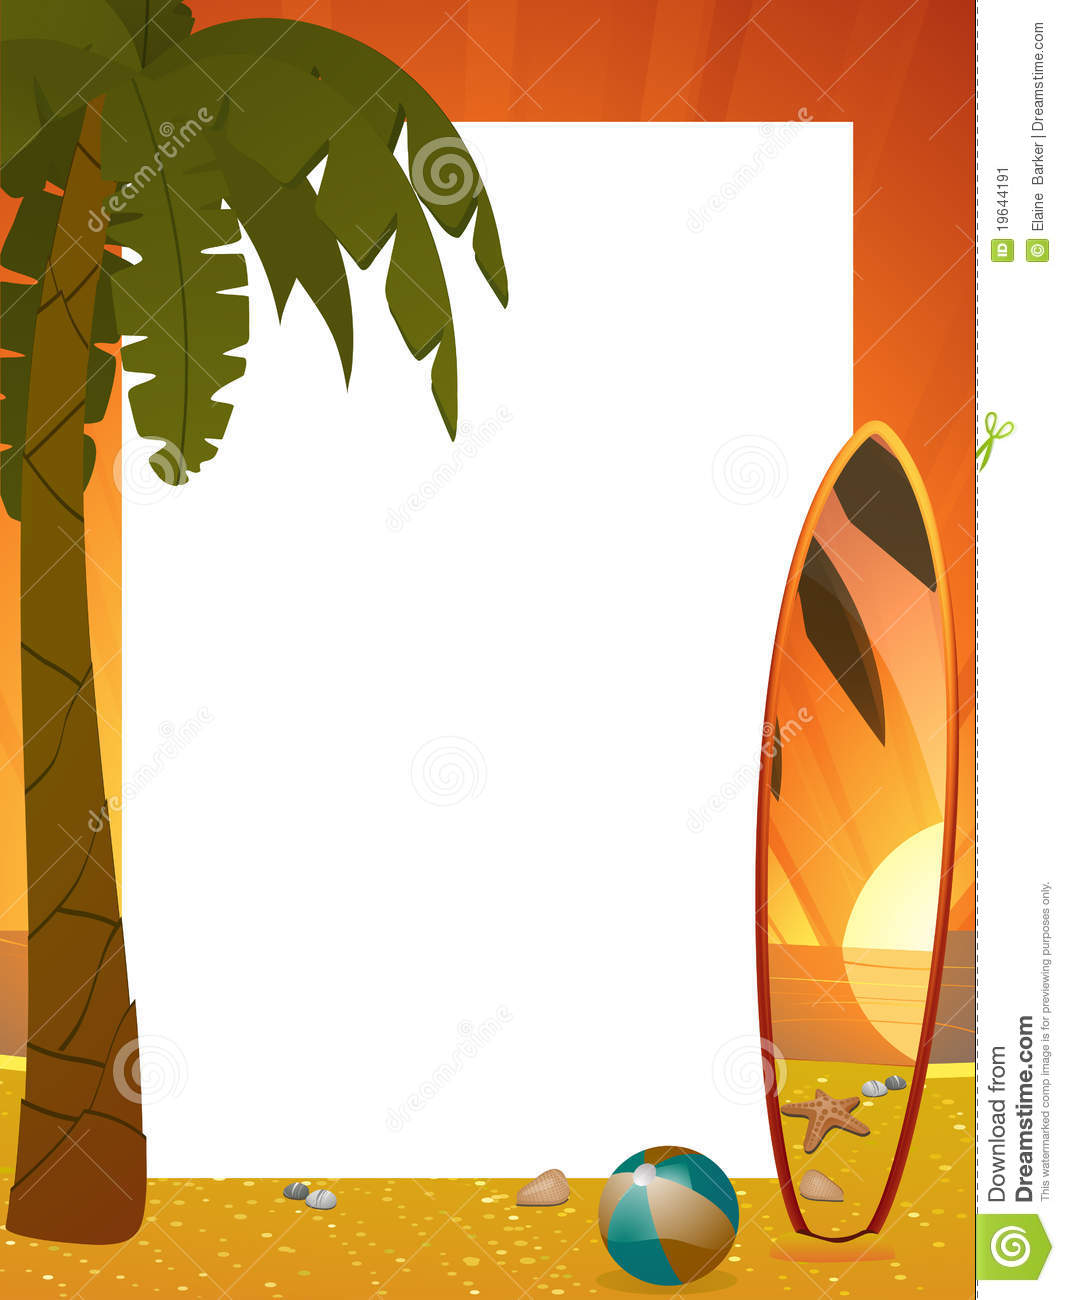 Surfboard palm tree clipart jpg free Summer Sunset Border With Palm Tree And Surfboard Stock Image ... jpg free